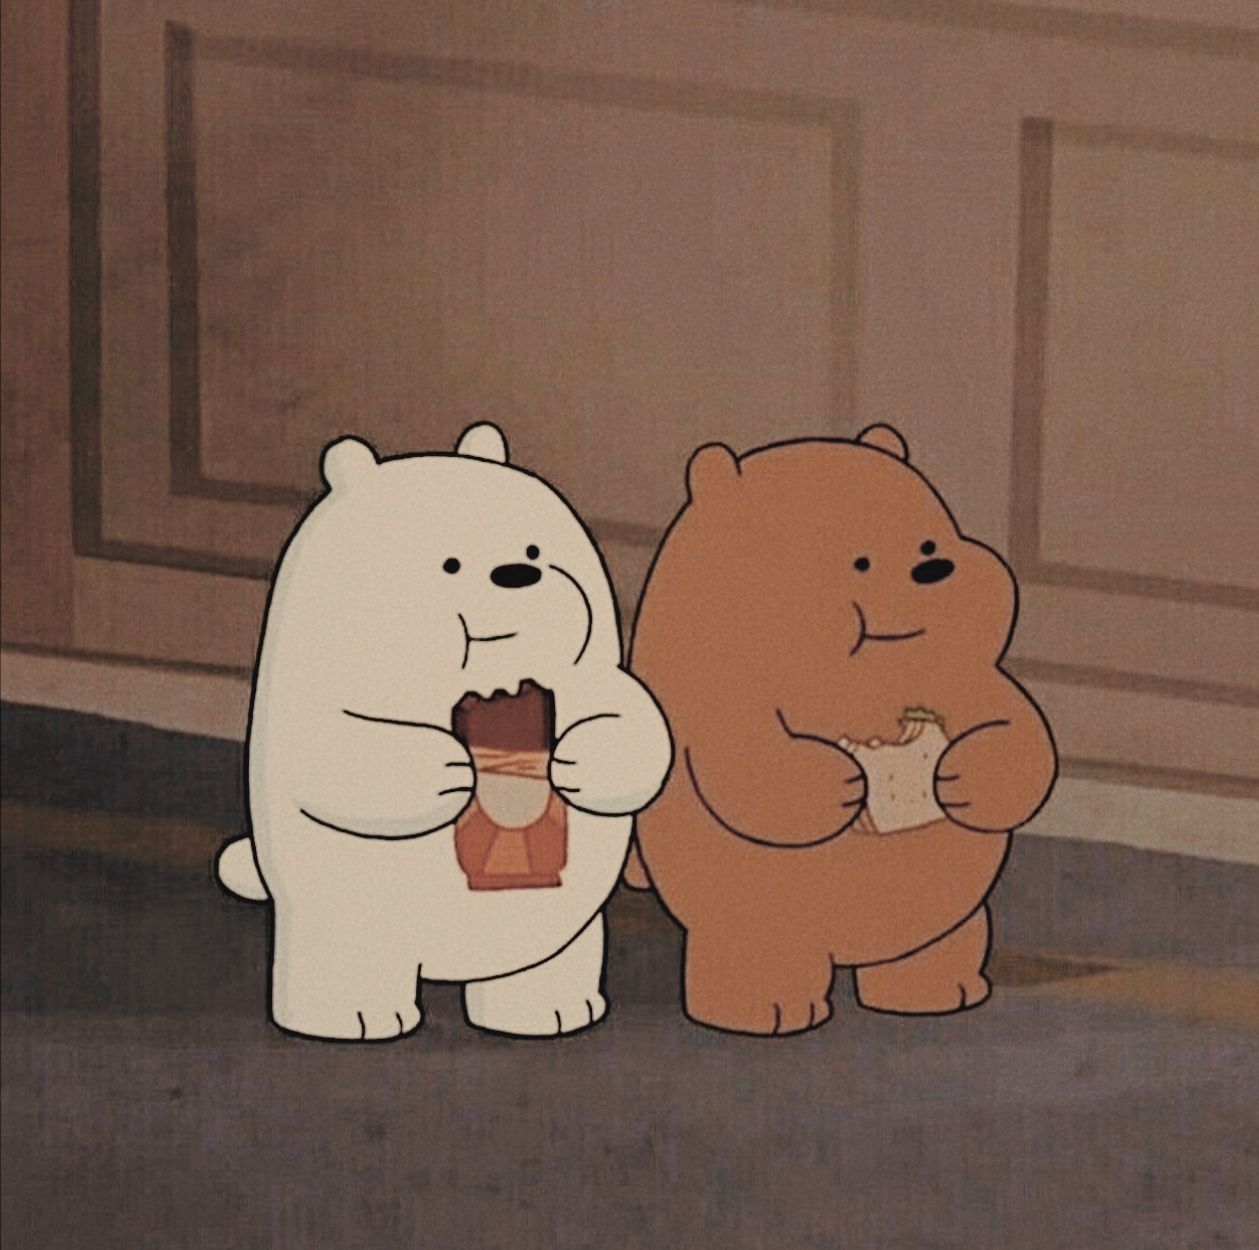 Pin by liza on backgrounds/aesthetic | We bare bears ...